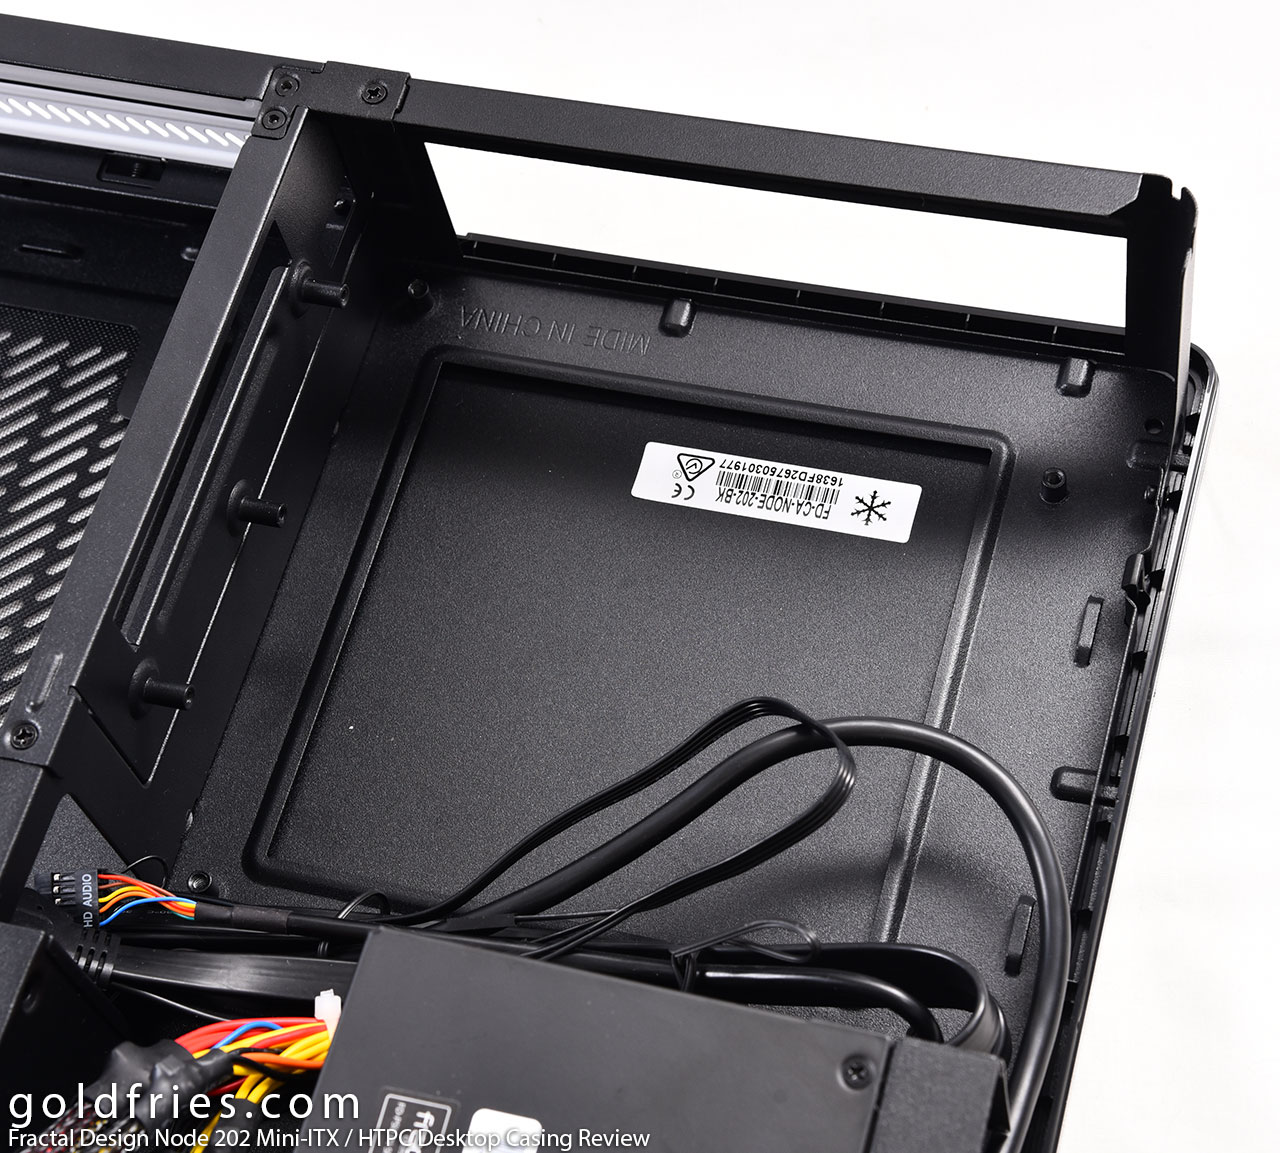 Fractal Design Node 202 Mini-ITX / HTPC Desktop Casing Review